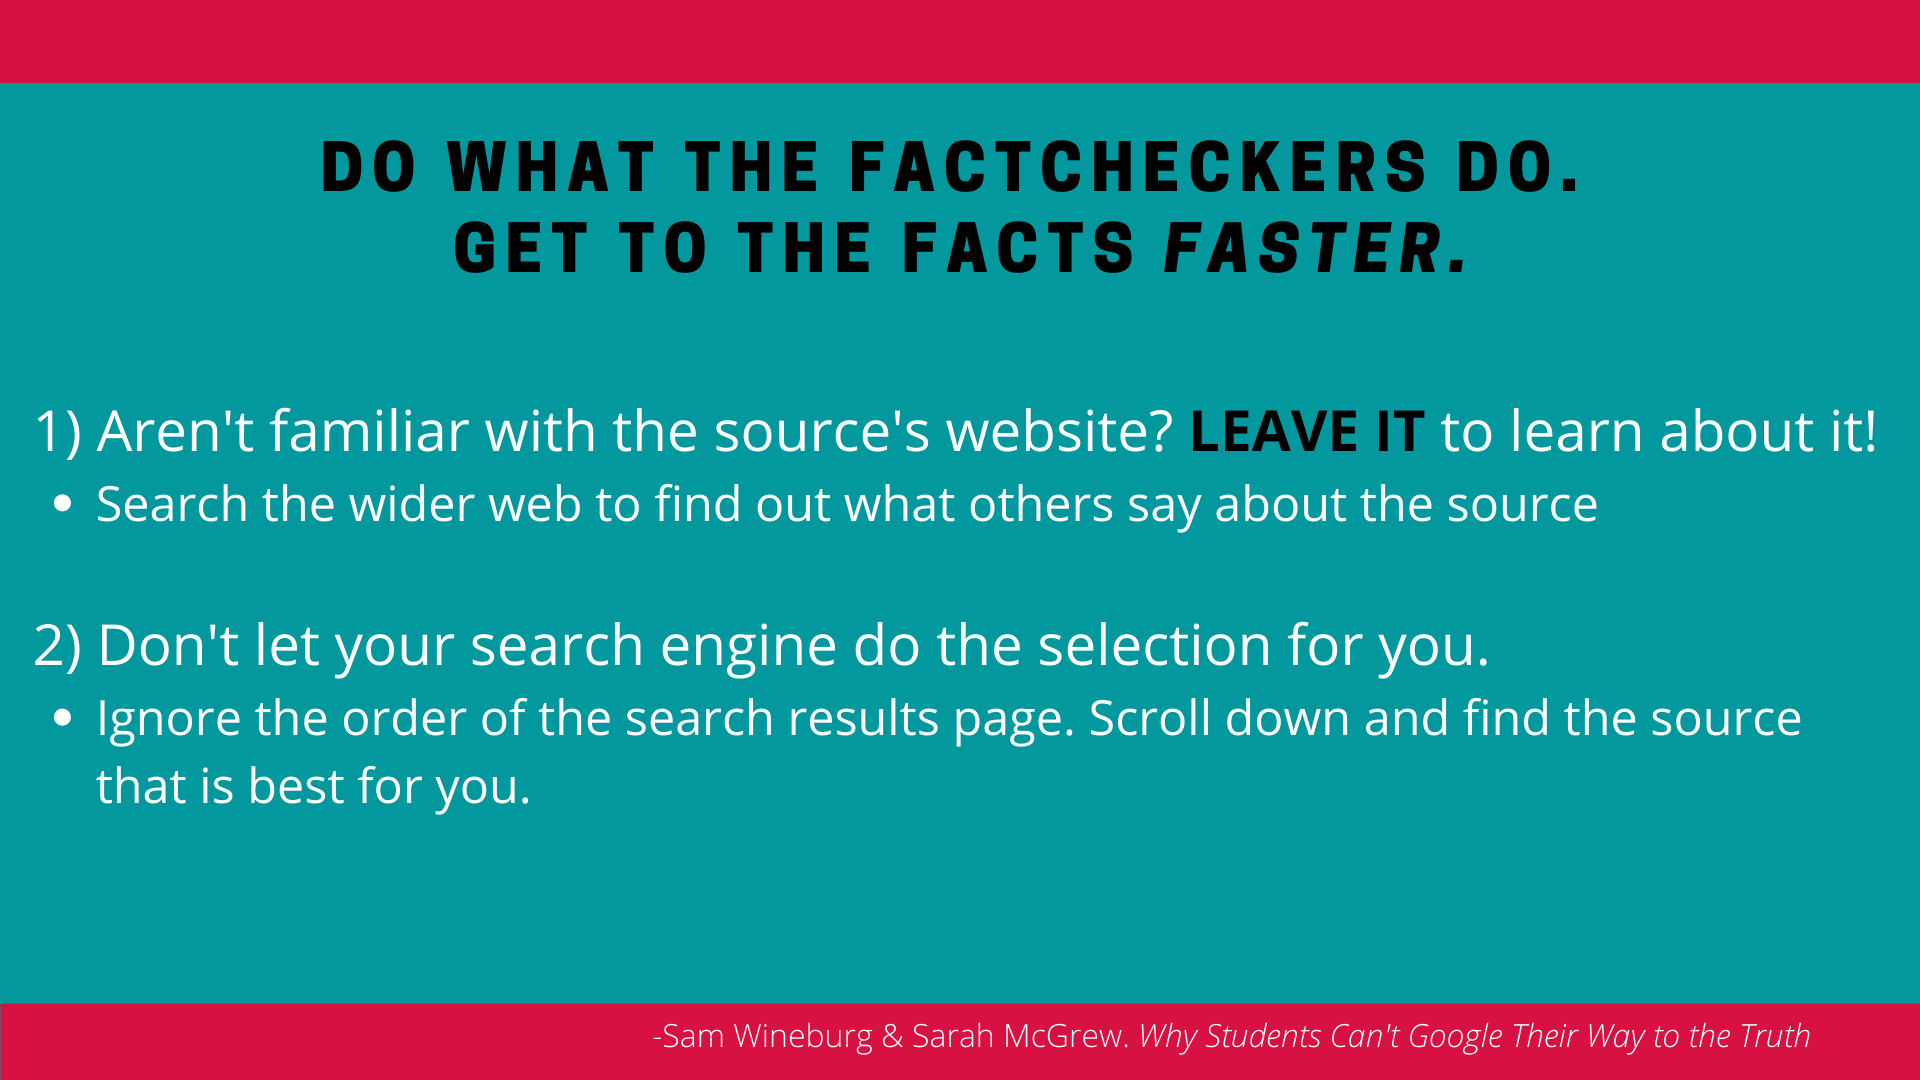 Do As Fact Checkers Do; 1. Aren't familiar with the source's website: Leave it to learn about it. 2. Don't let the search engine do the selection for you, scroll and select